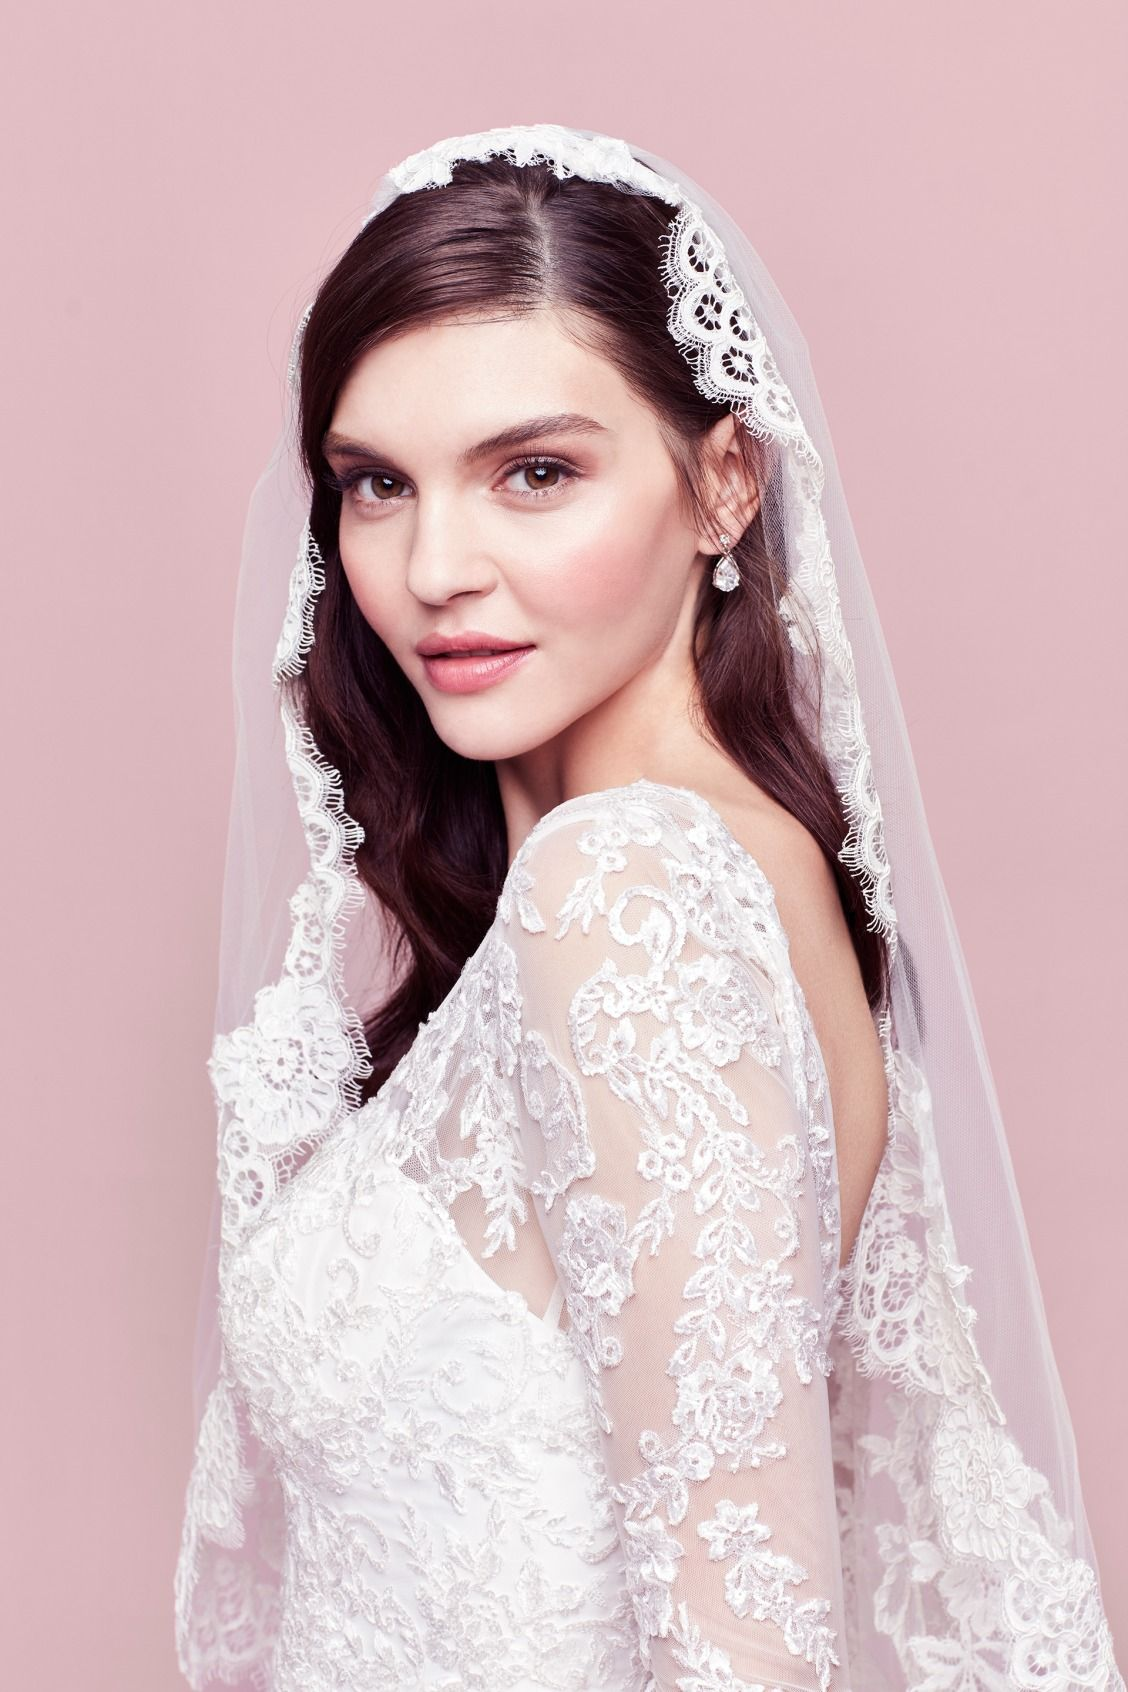 The Circular Spanish Style Mantilla Veil Features A Thicker Lace Trim Along Its Edge Softly Drape The Veil Over Your Head A Hid Wedding Wedding Veils Bridal